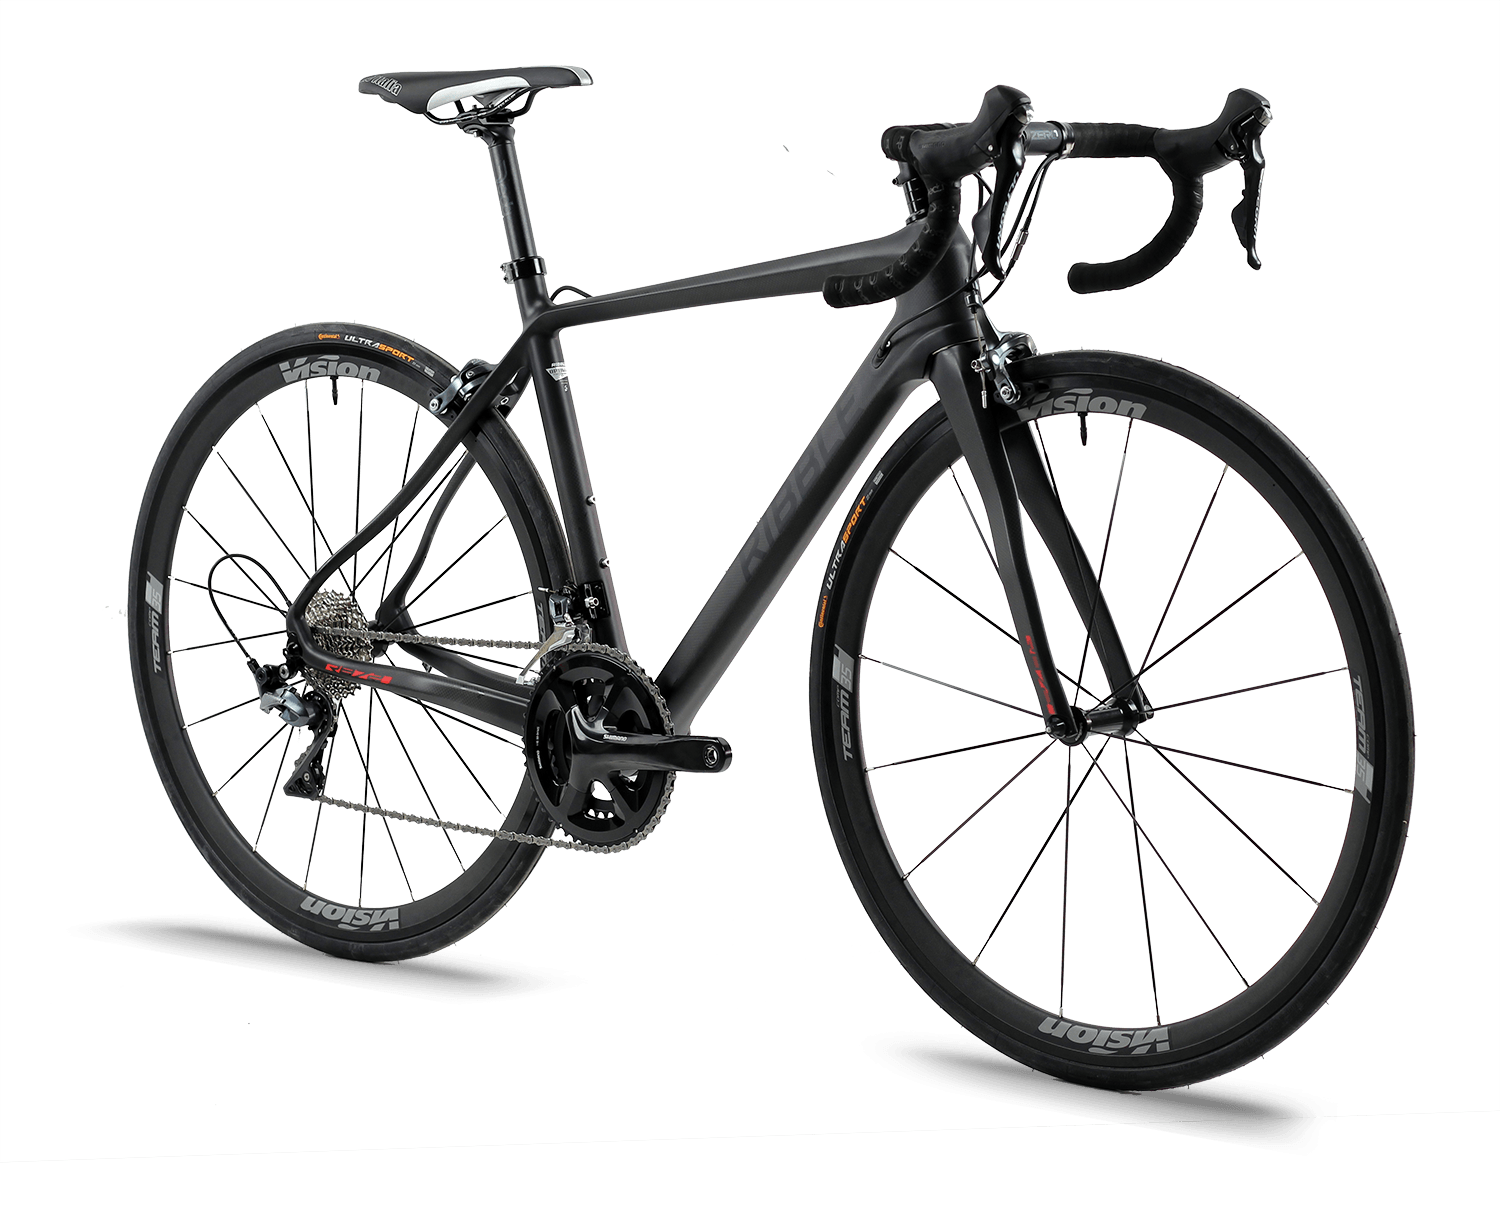 Black Friday Cycling Deals - Ribble R872 Black Friday Special Edition